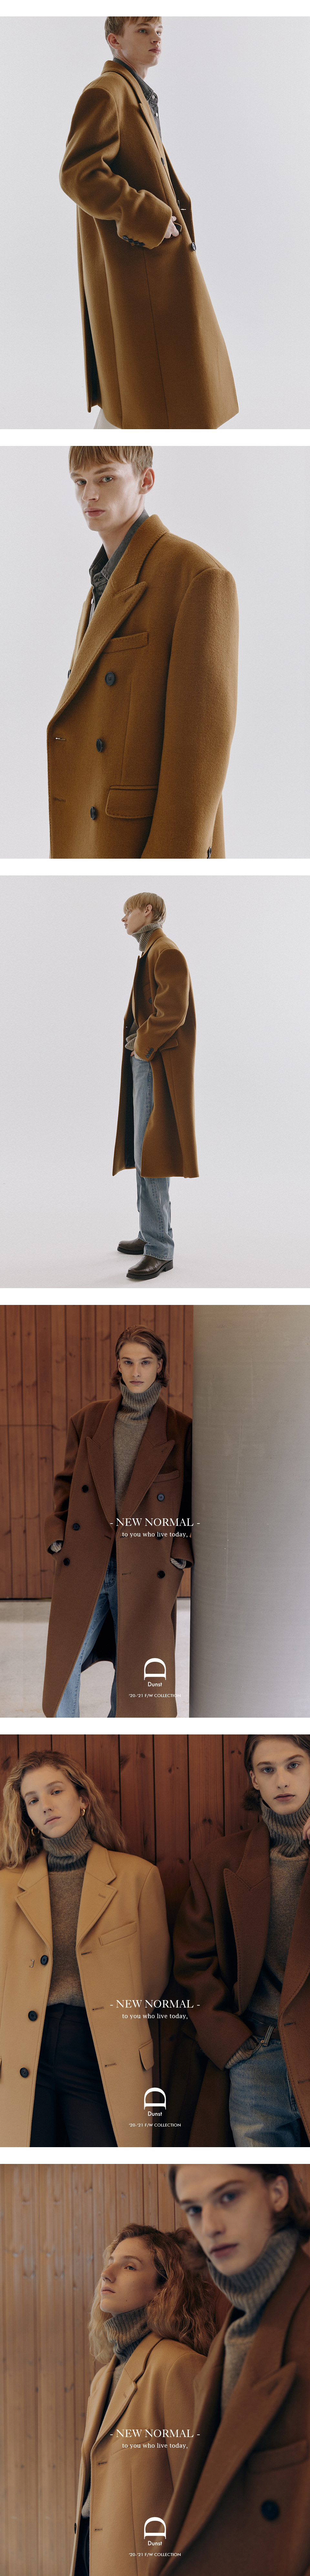 던스트 포 맨(DUNST FOR MAN) UNISEX NEW TAILORED DOUBLE-BREASTED CASHMERE COAT OLIVE CAMEL_M_UDCO0F115CM